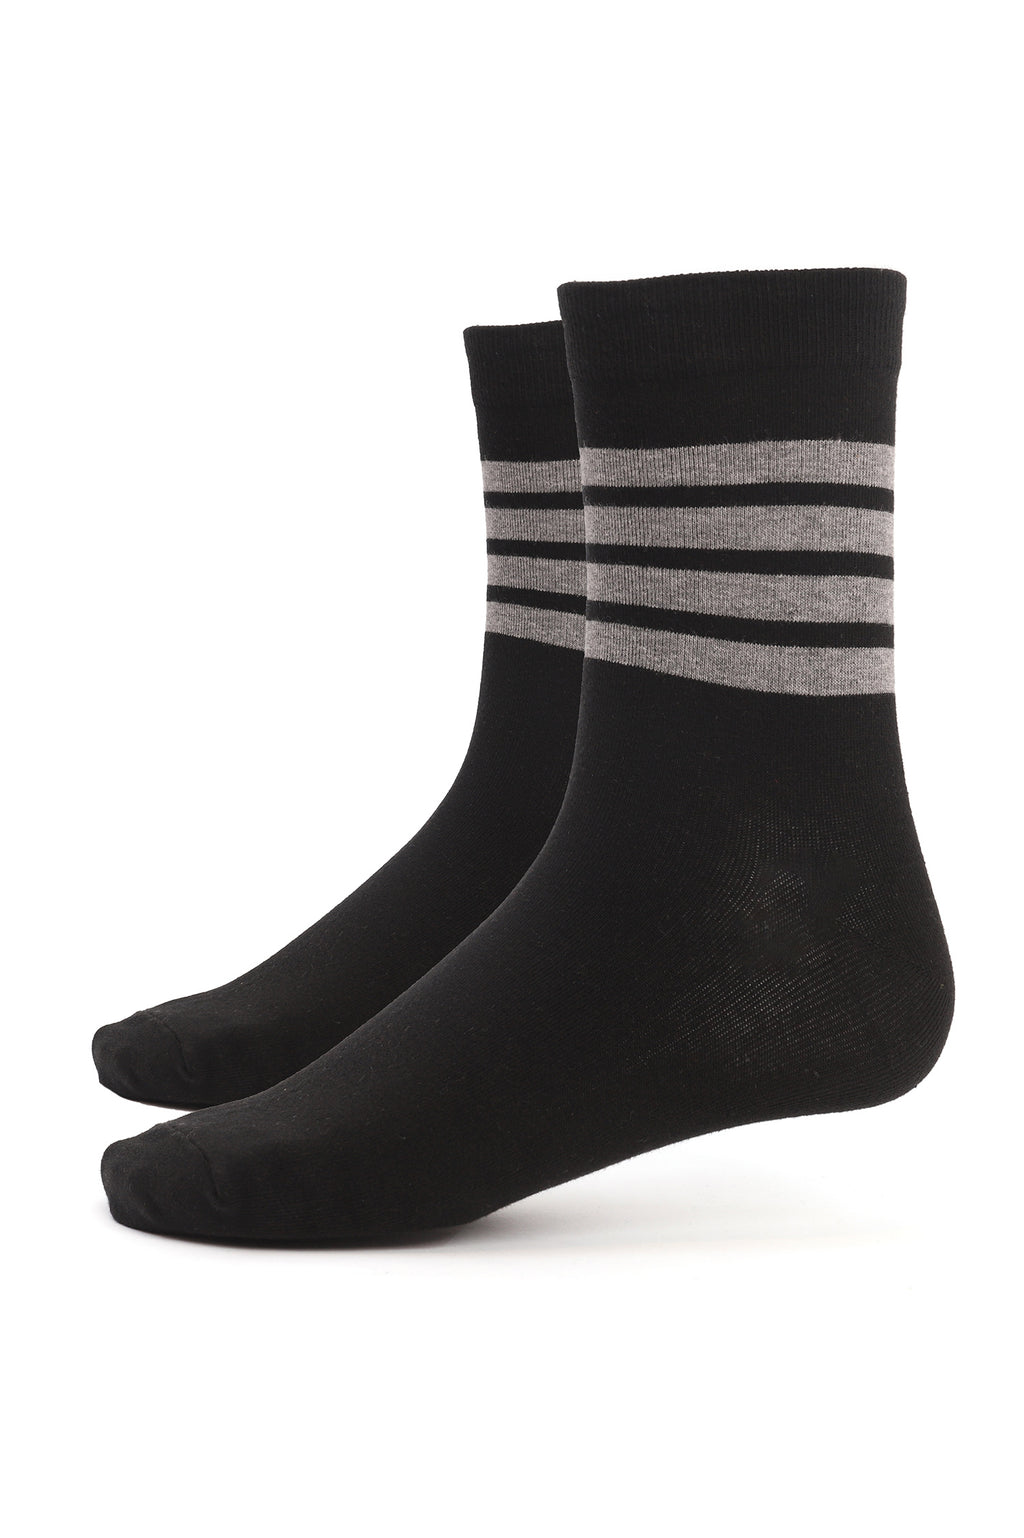 LITE SOCKS -BLACK-GREY